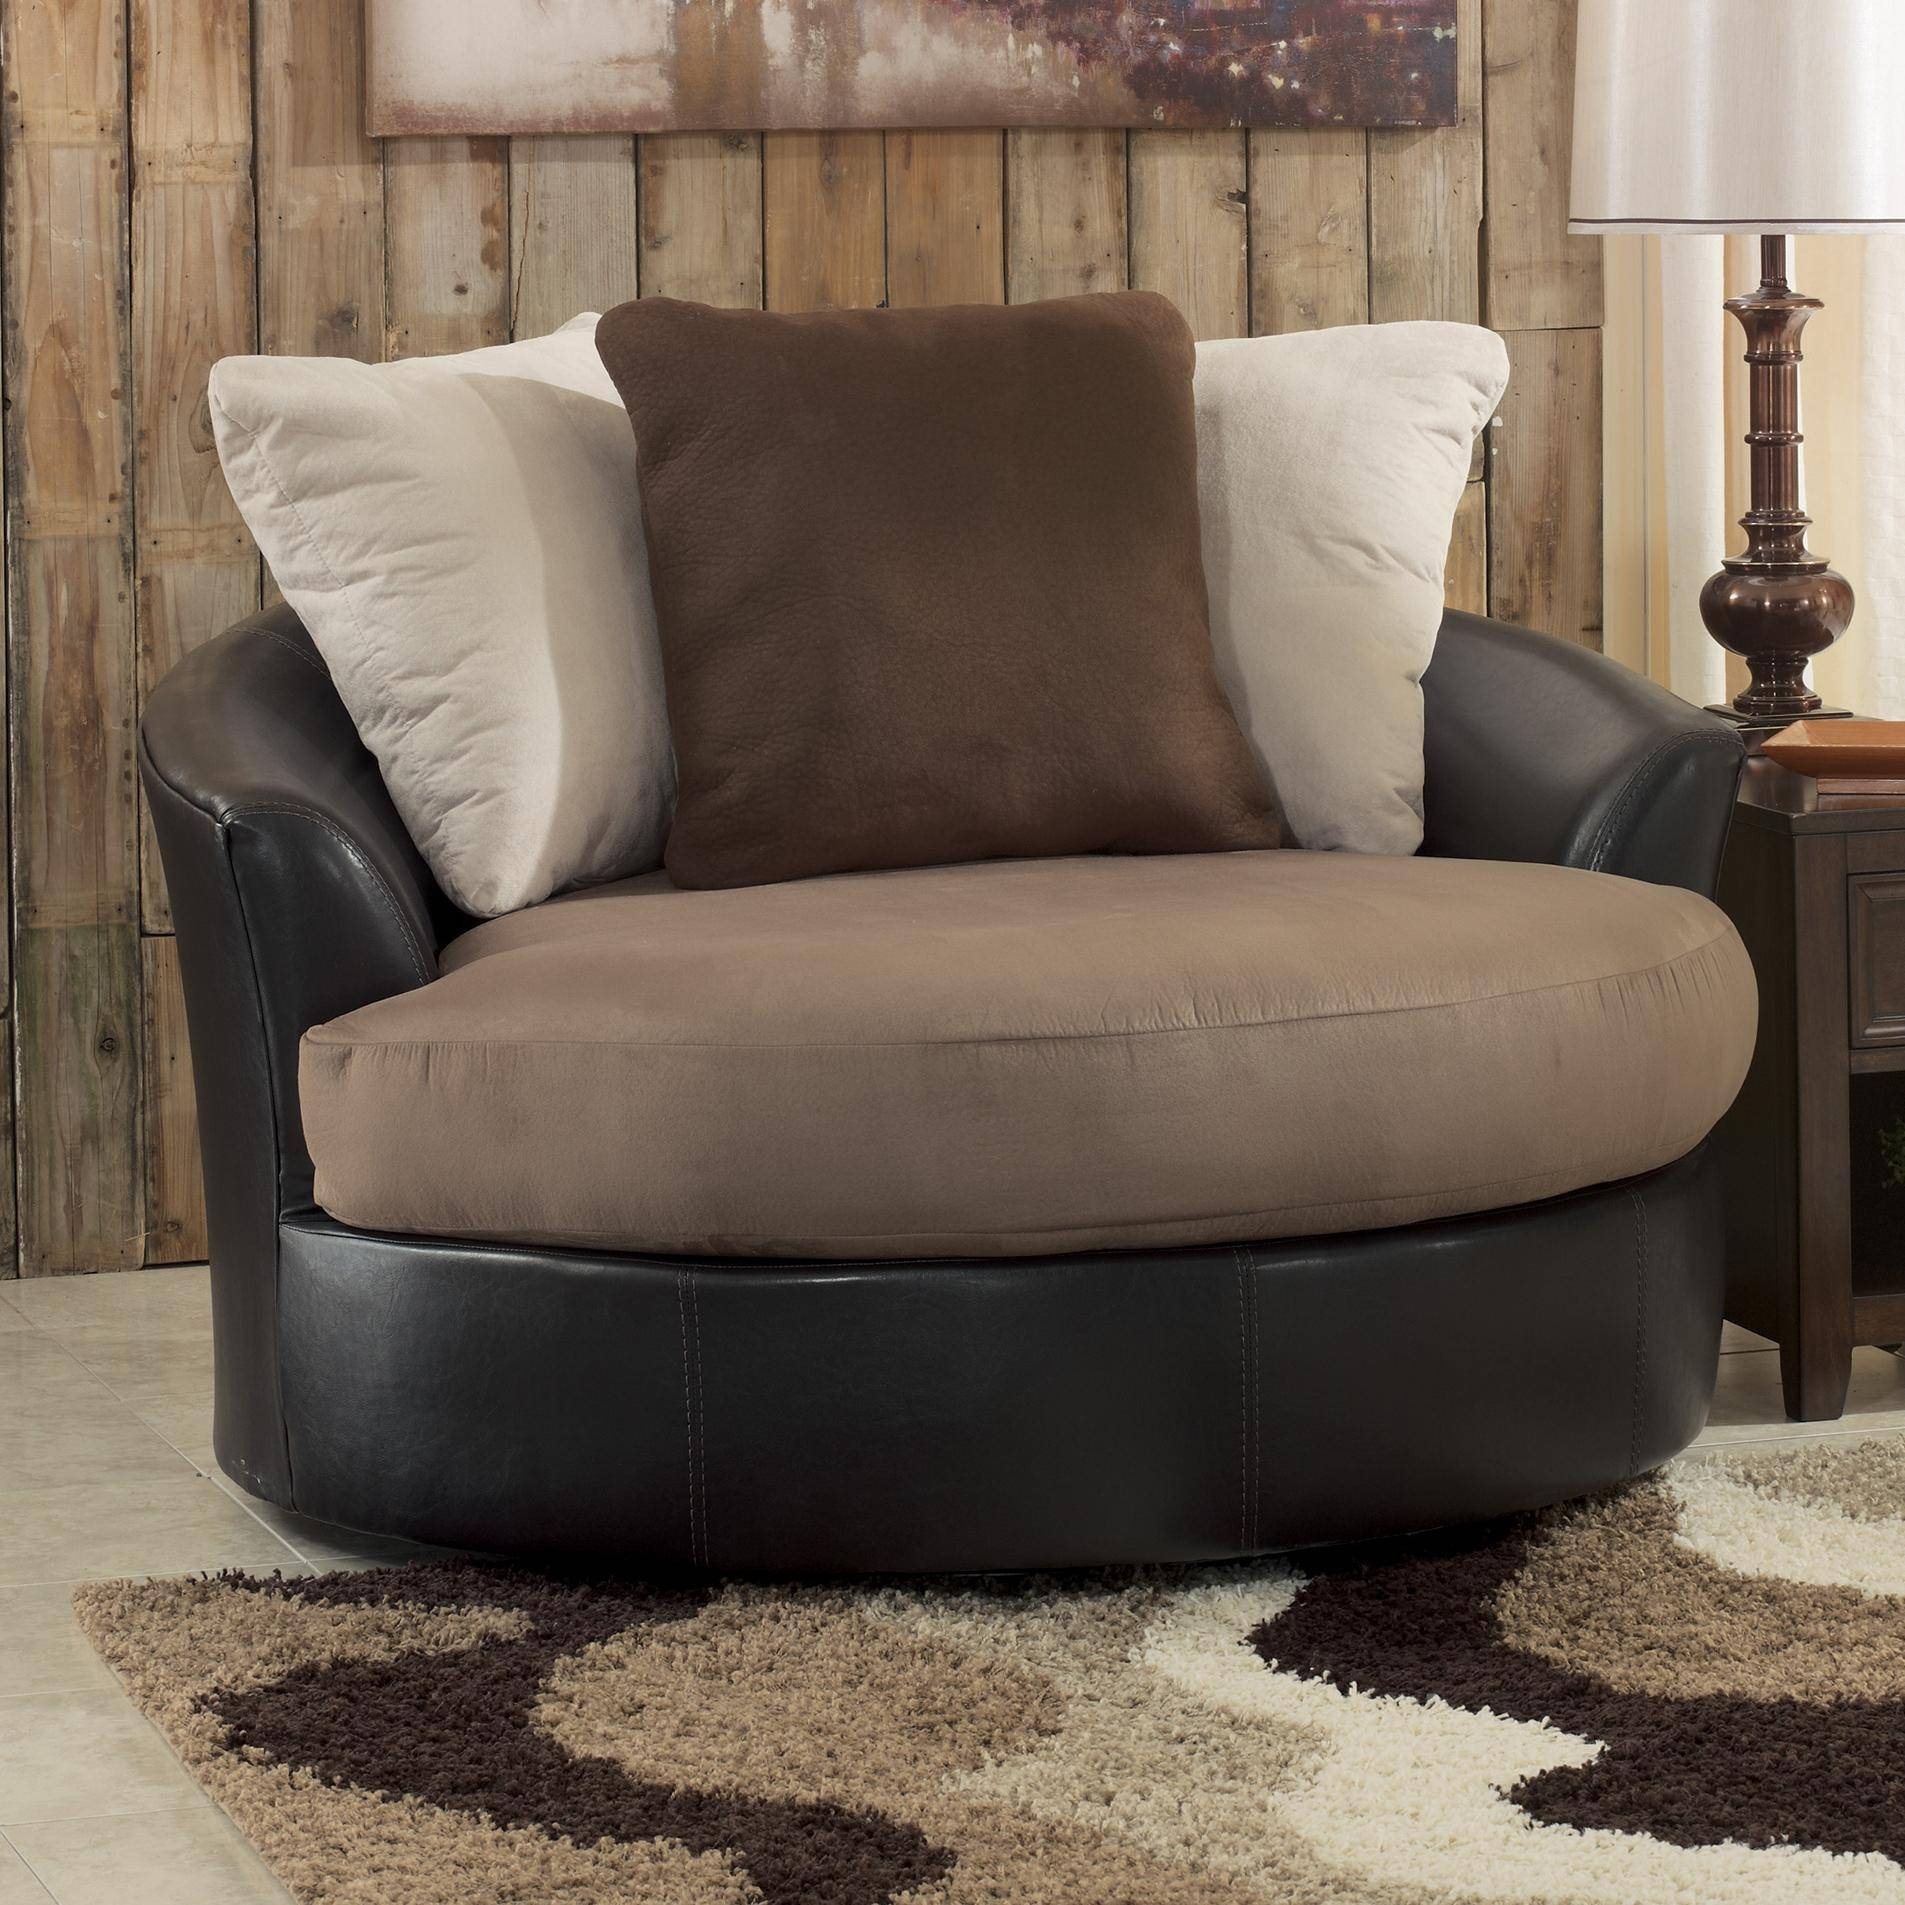 Circle Chairs For Bedrooms 30 Photos Round Swivel Sofa Chairs